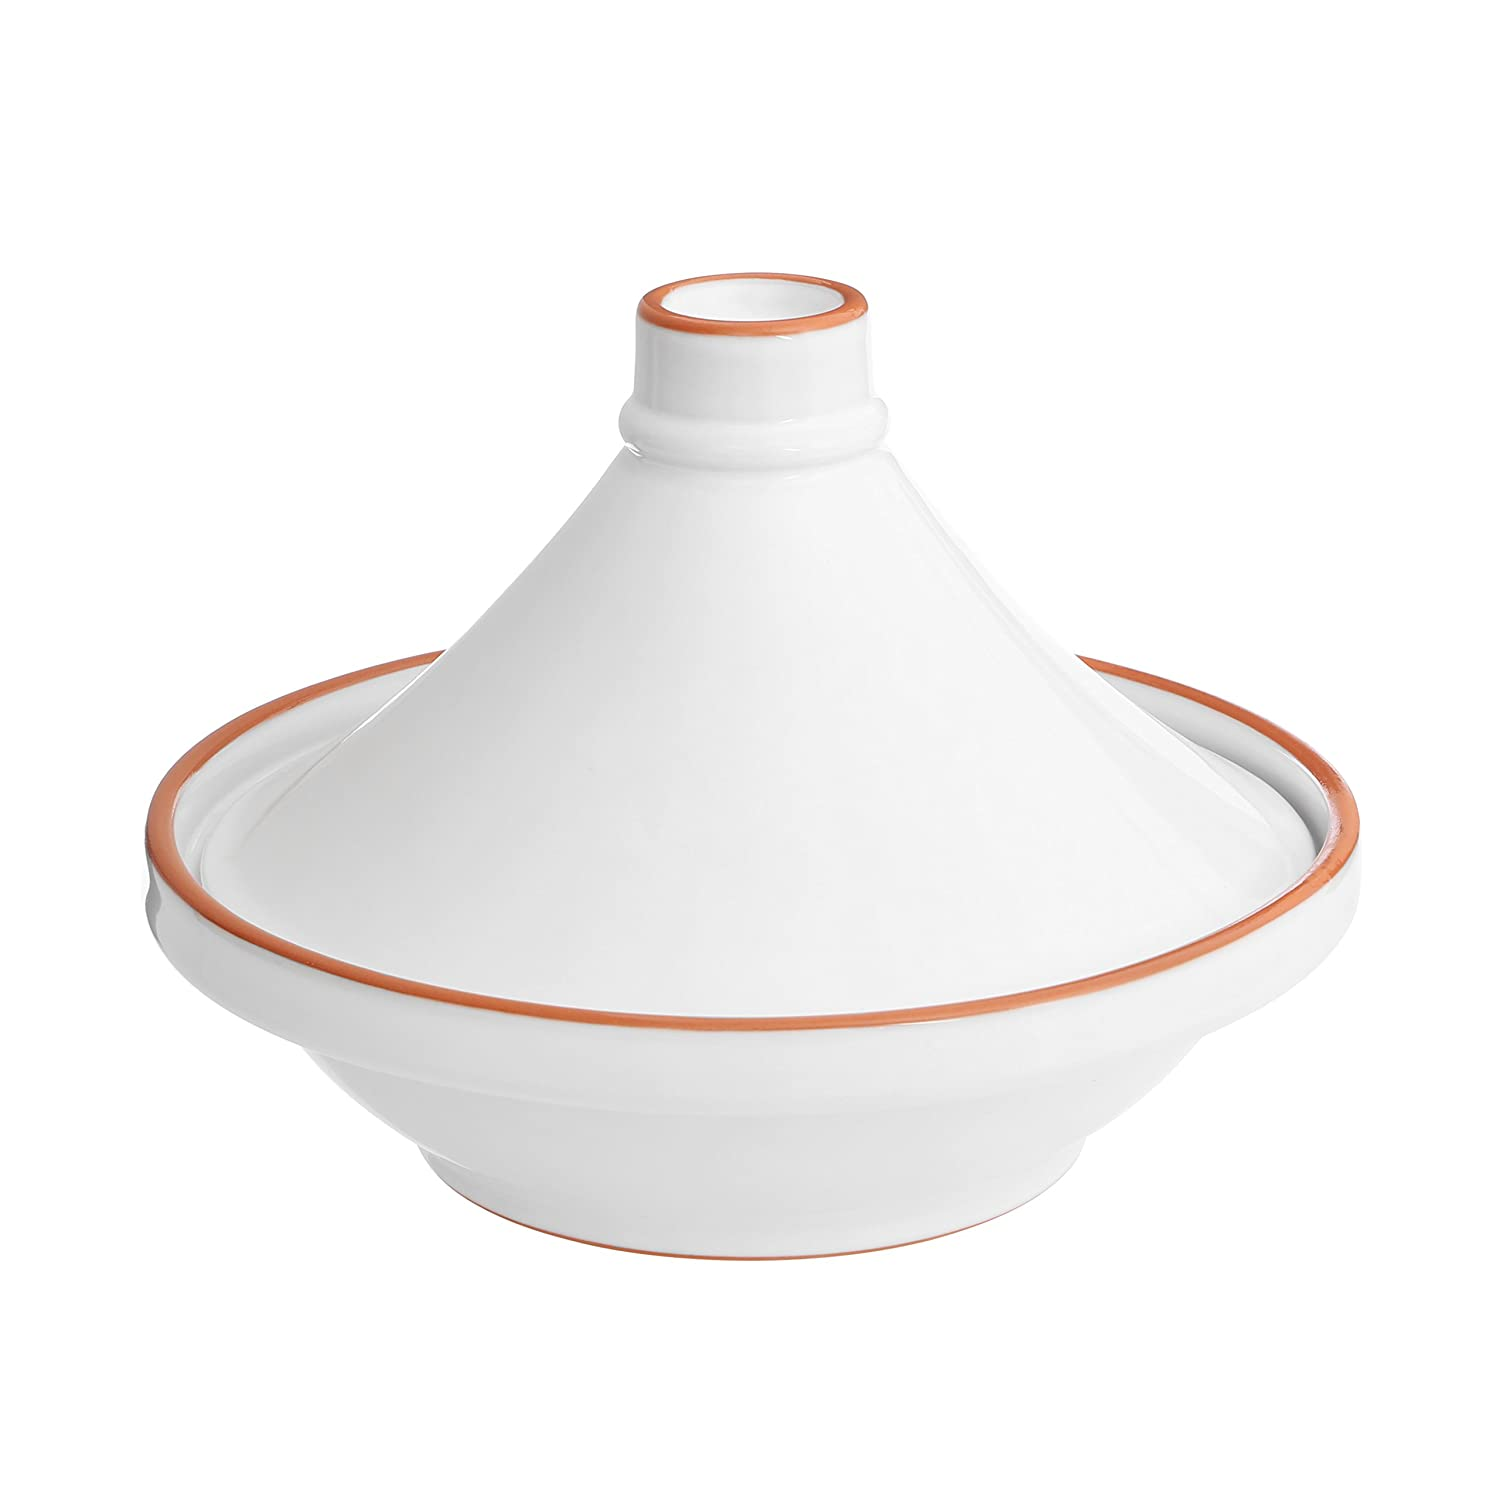 Premier Housewares Calisto Tagine, Ceramic, White, 1.5 Litre 0722851